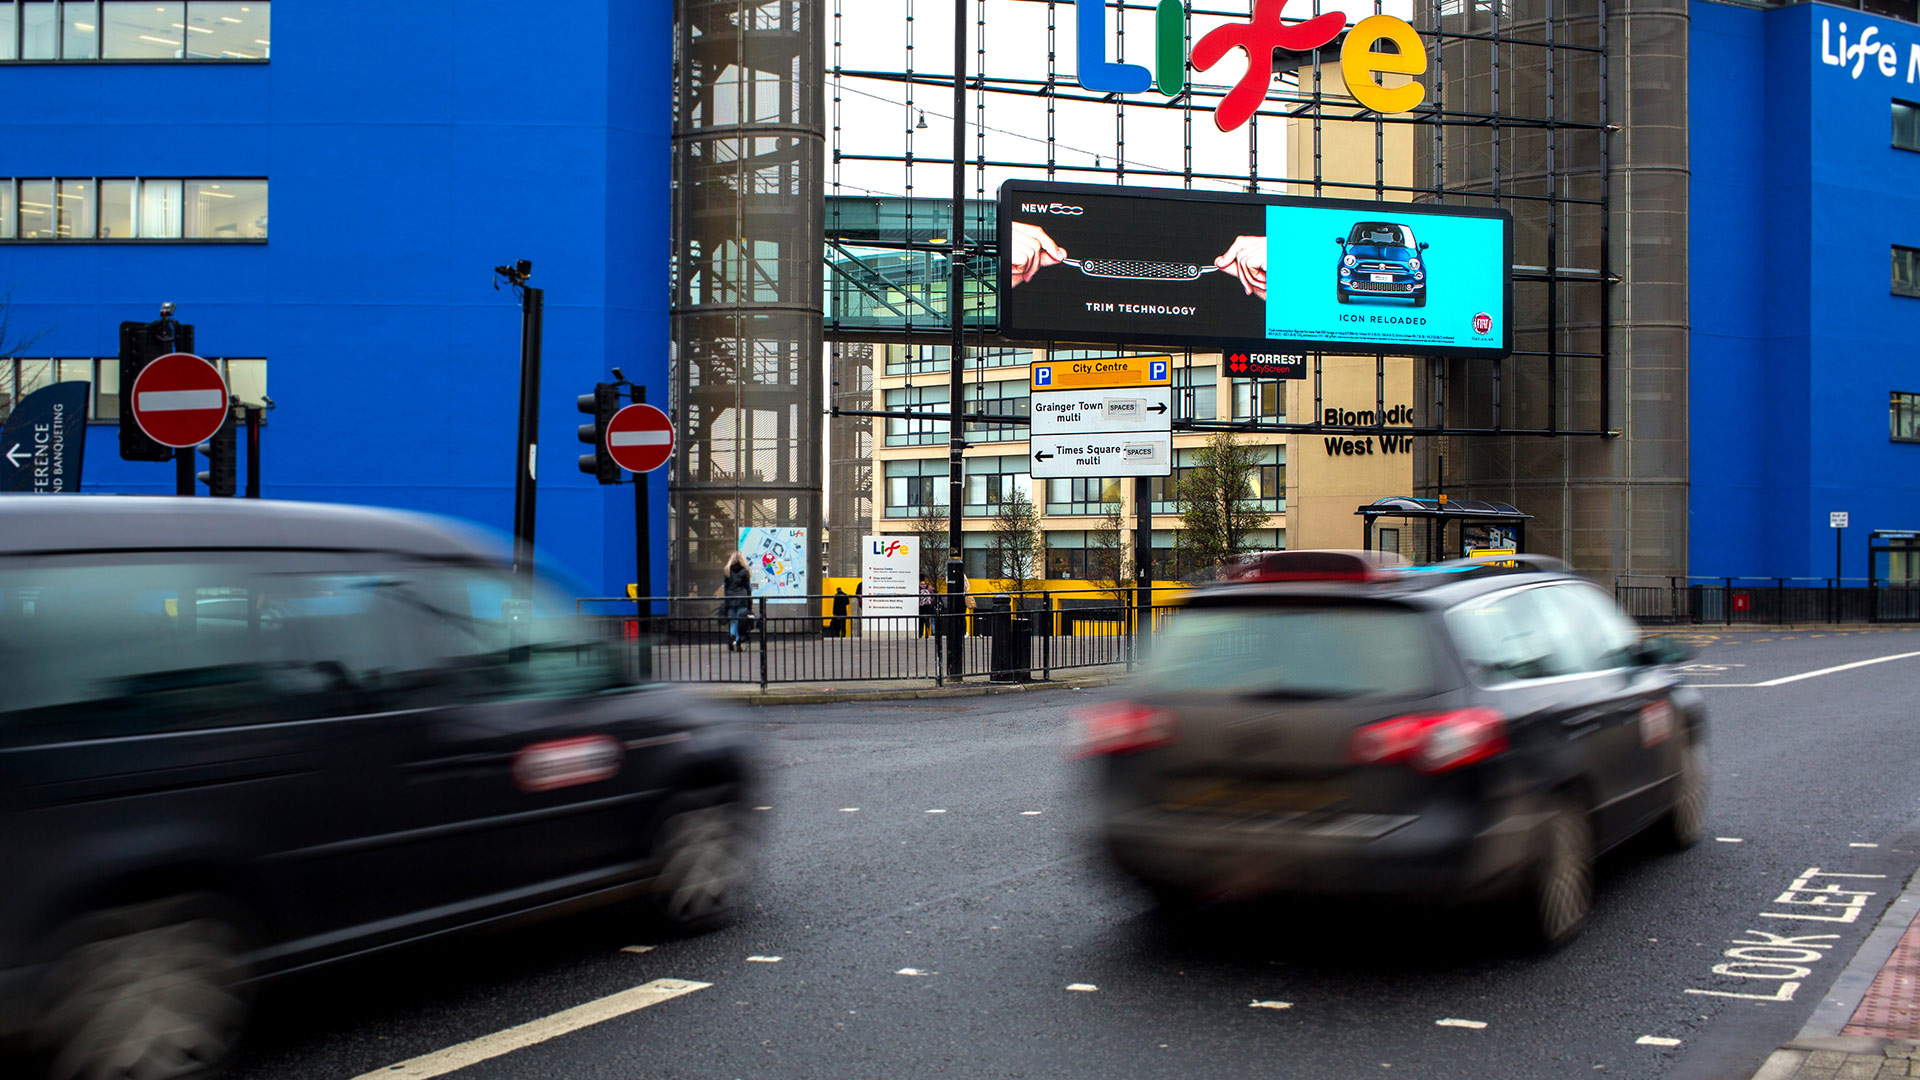 Forrest-Media-Newcastle-Times-Square0